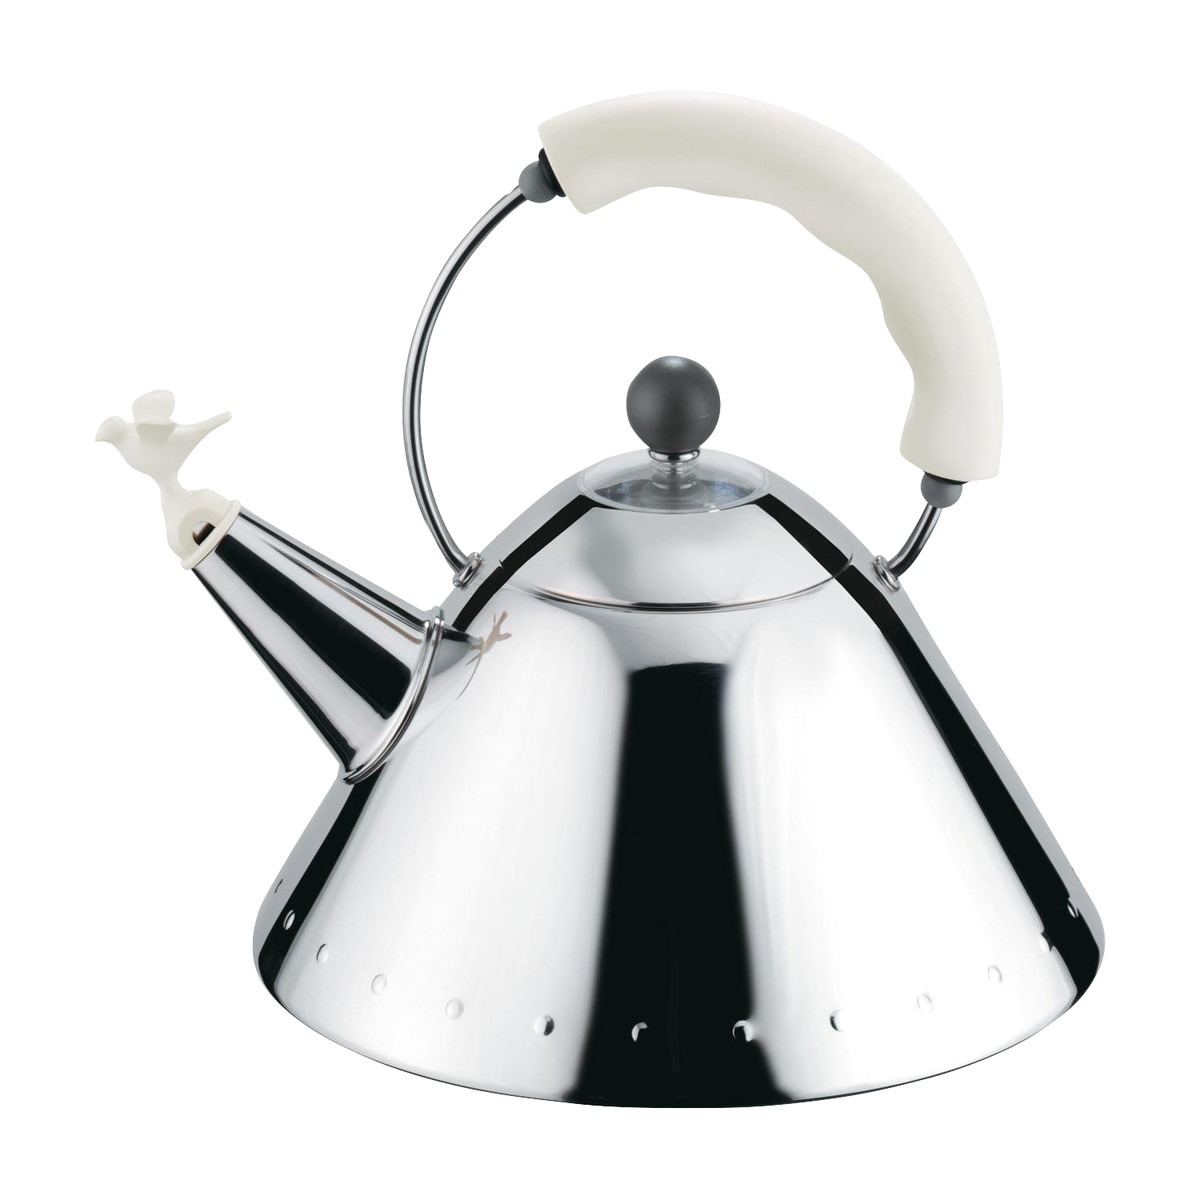 alessi 9093 kettle alessi. Black Bedroom Furniture Sets. Home Design Ideas